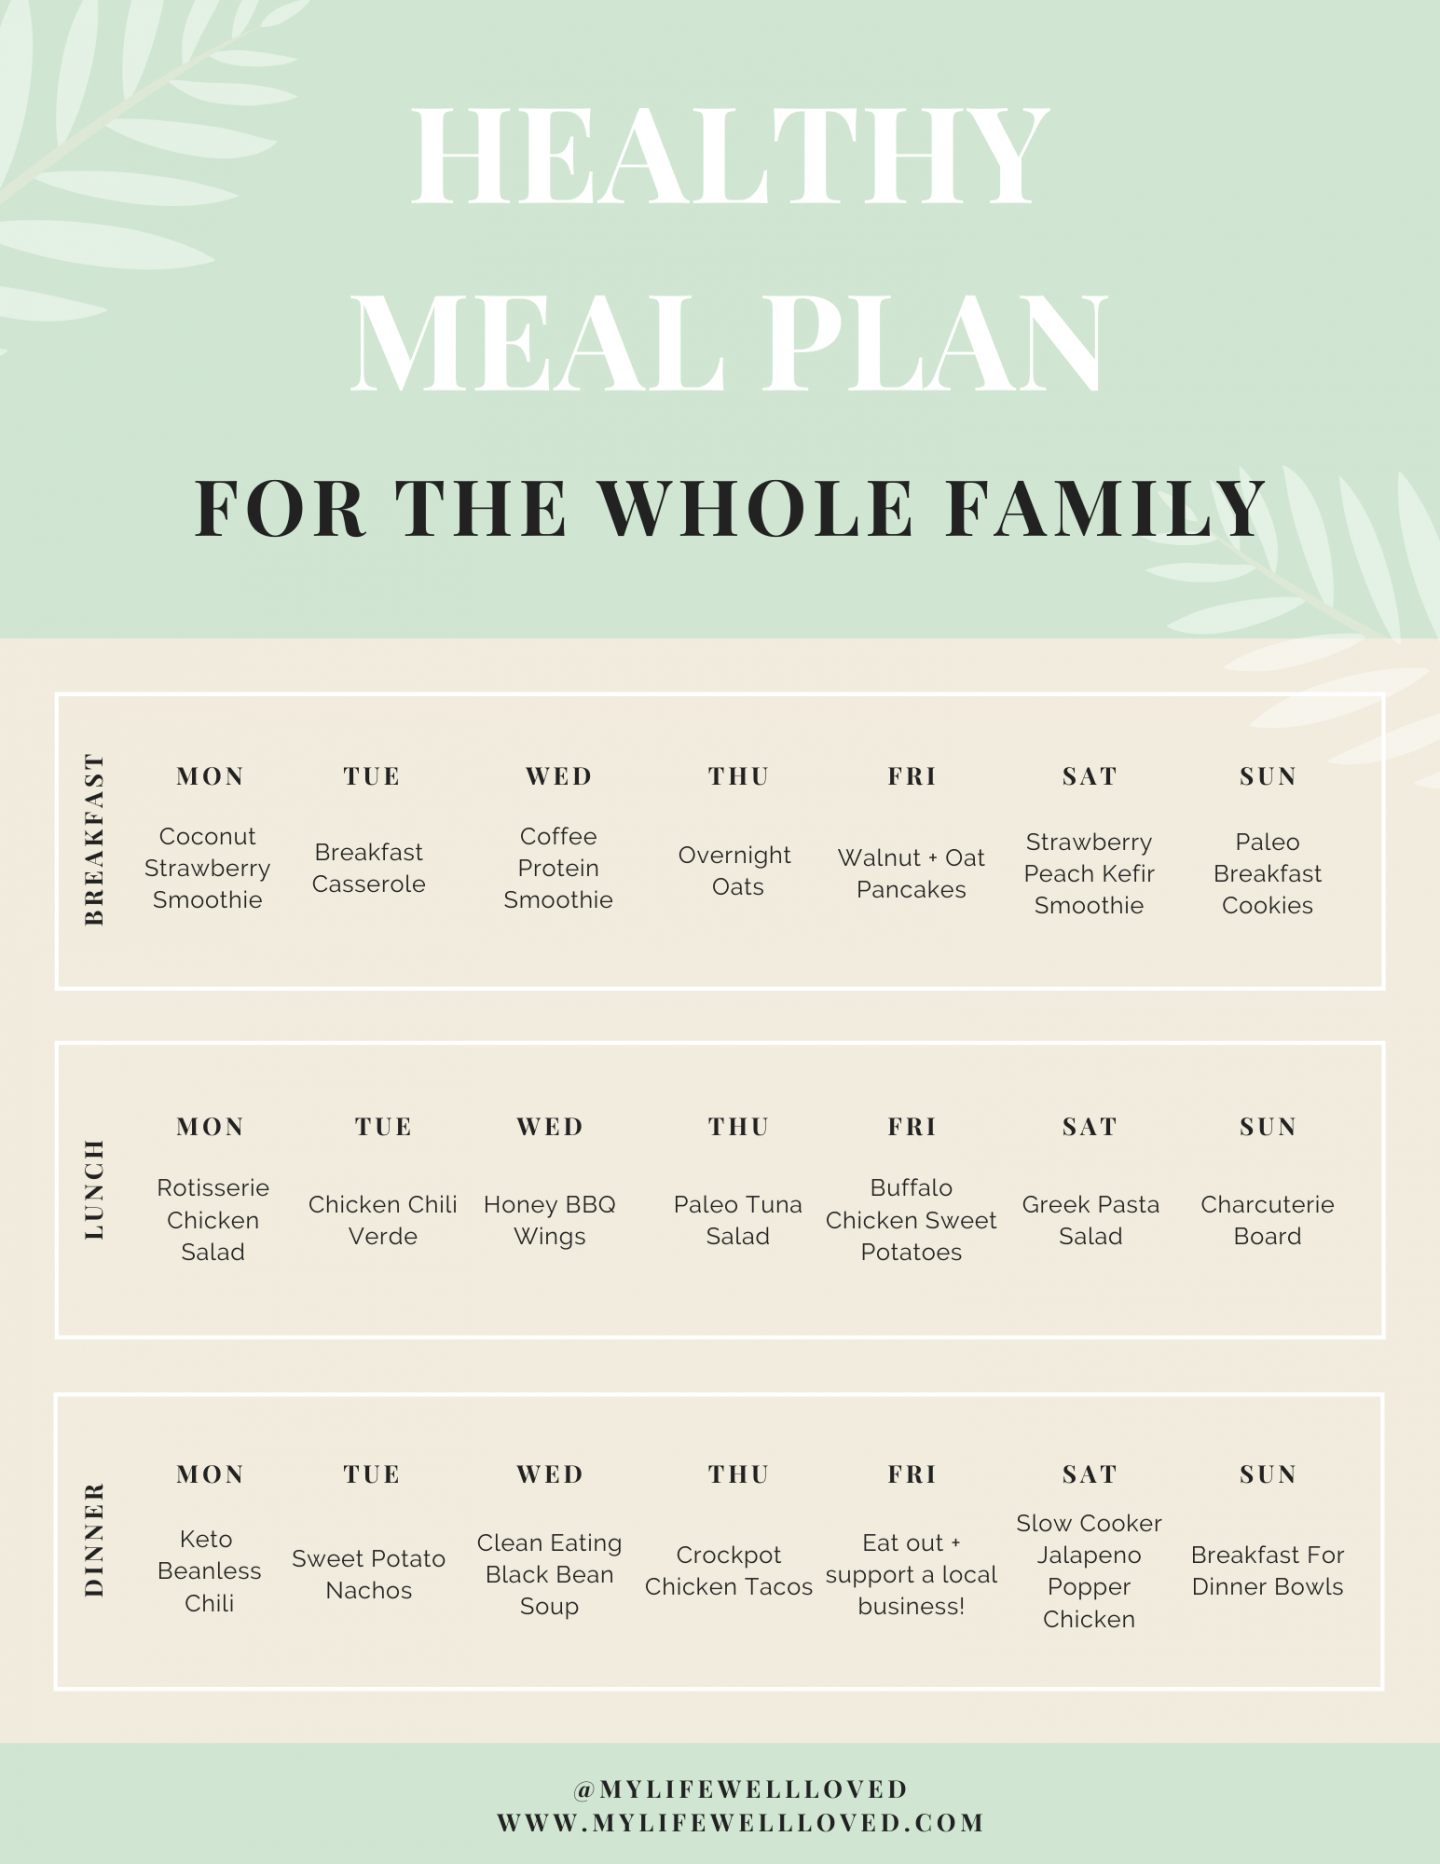 Quarantine Meal Plan By Alabama Life + Style blogger, Heather Brown // My Life Well Loved